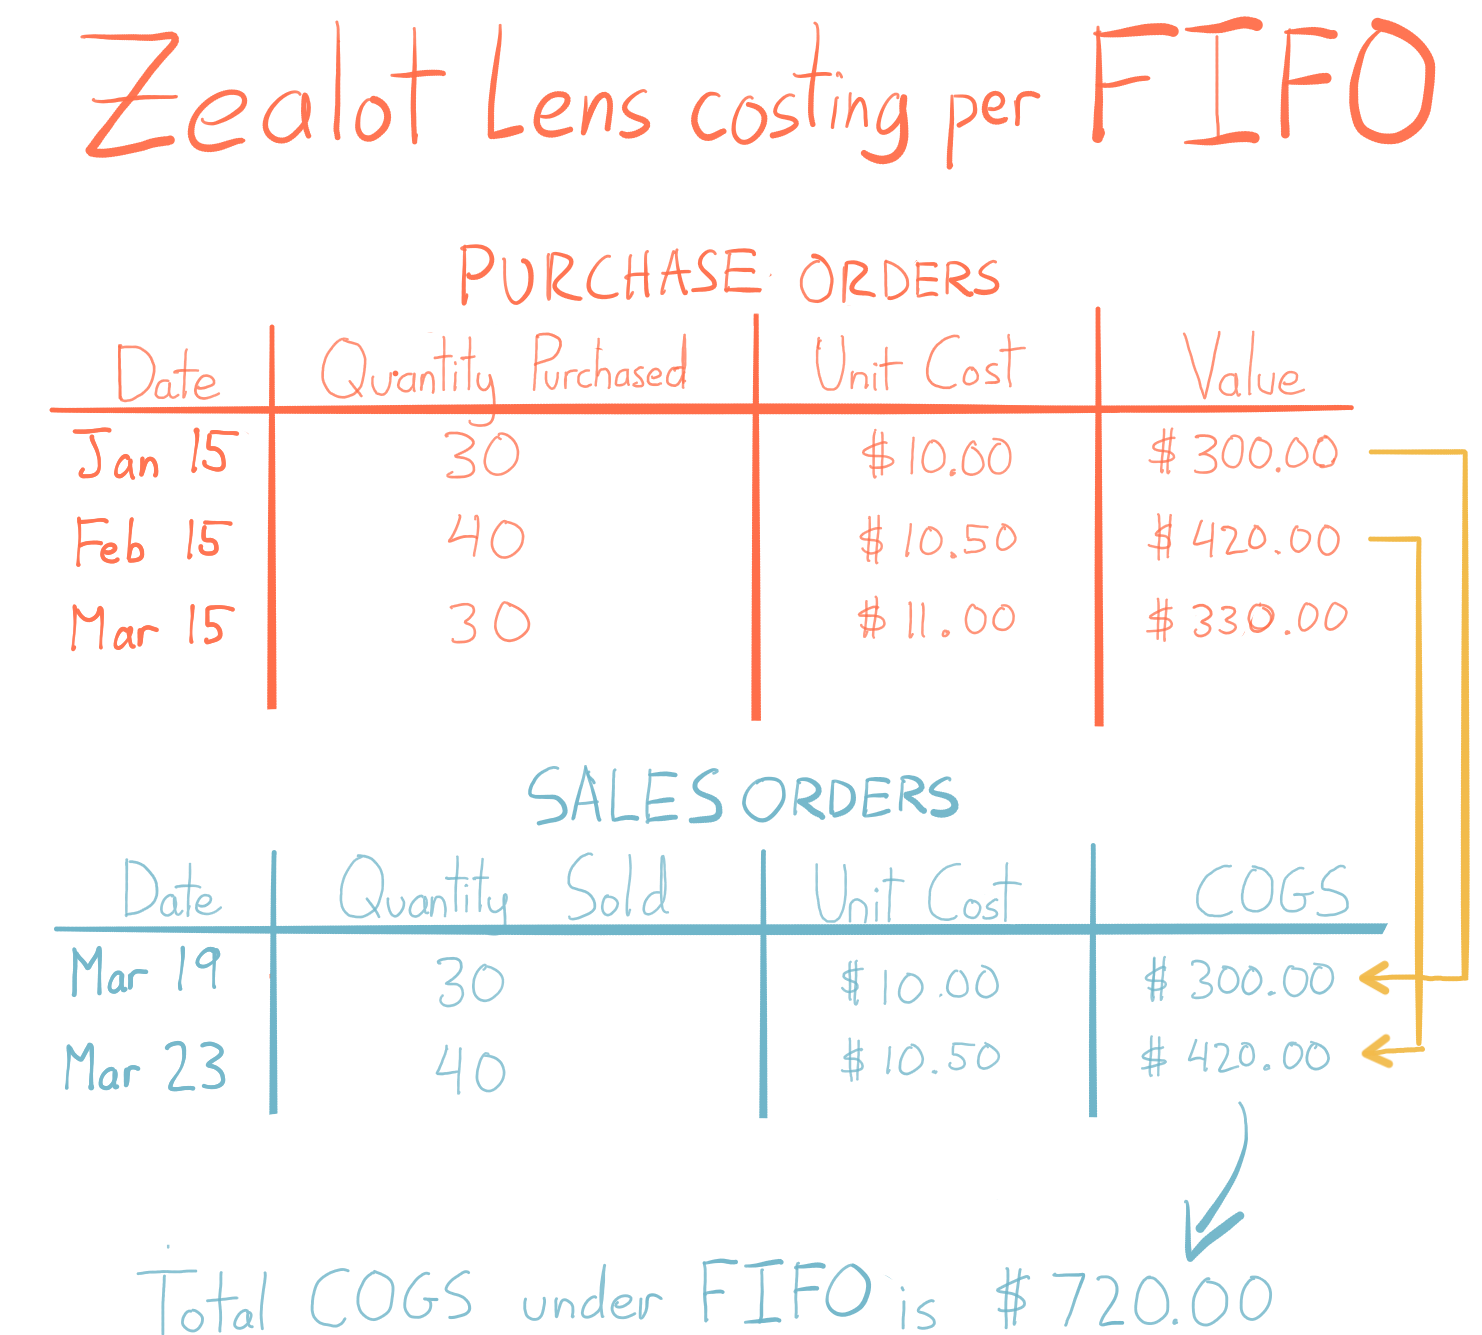 This tables highlights how the FIFO method affects cost. There are a series of purchase orders on top and a series of sales orders on the bottom. Arrows connect the first purchase order to the first sales order, and the second purchase order to the second sales order. The COGS for both sales is $720.